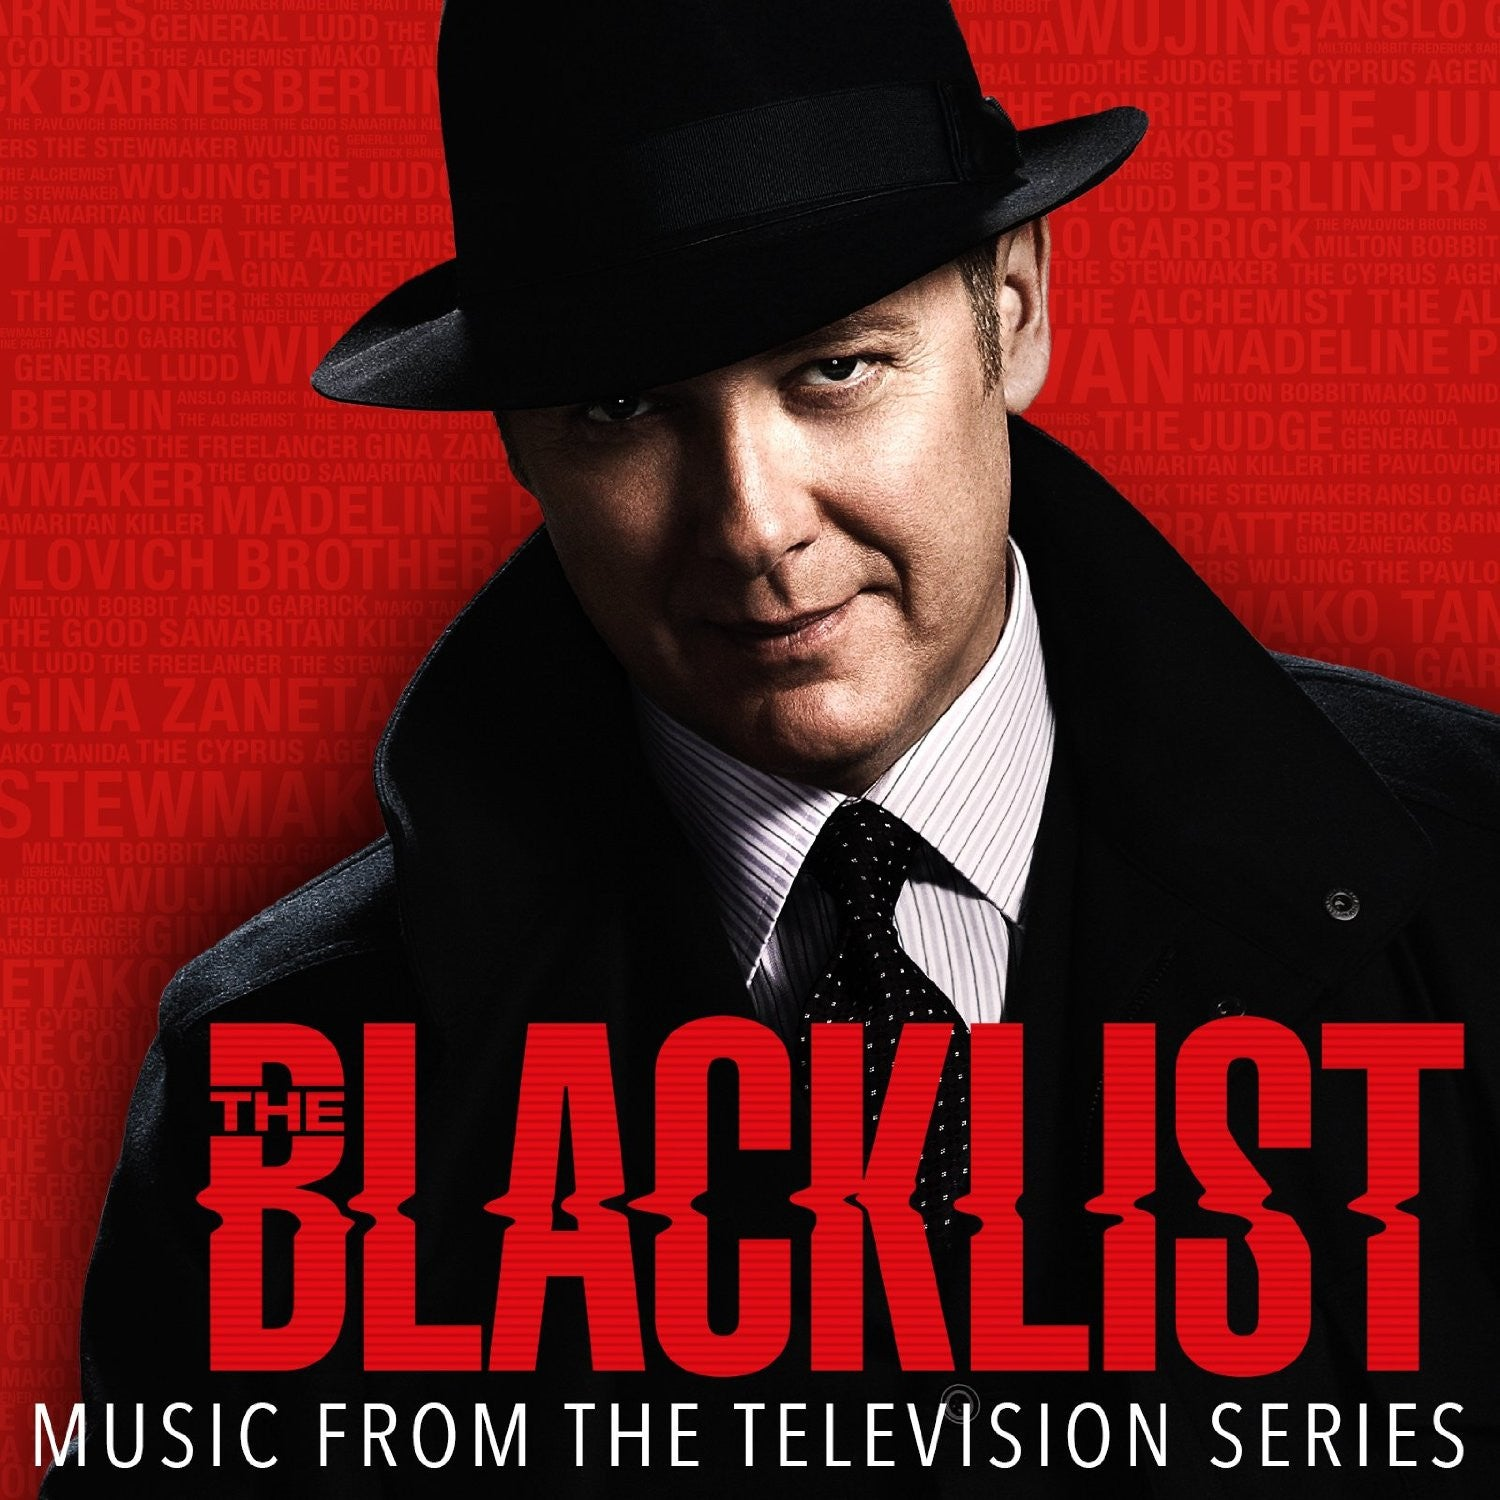 Soundtrack - The Blacklist - New Vinyl 2016 Spacelab Record Store Day 'Decoder Ring' Red Vinyl, Limited to 1500